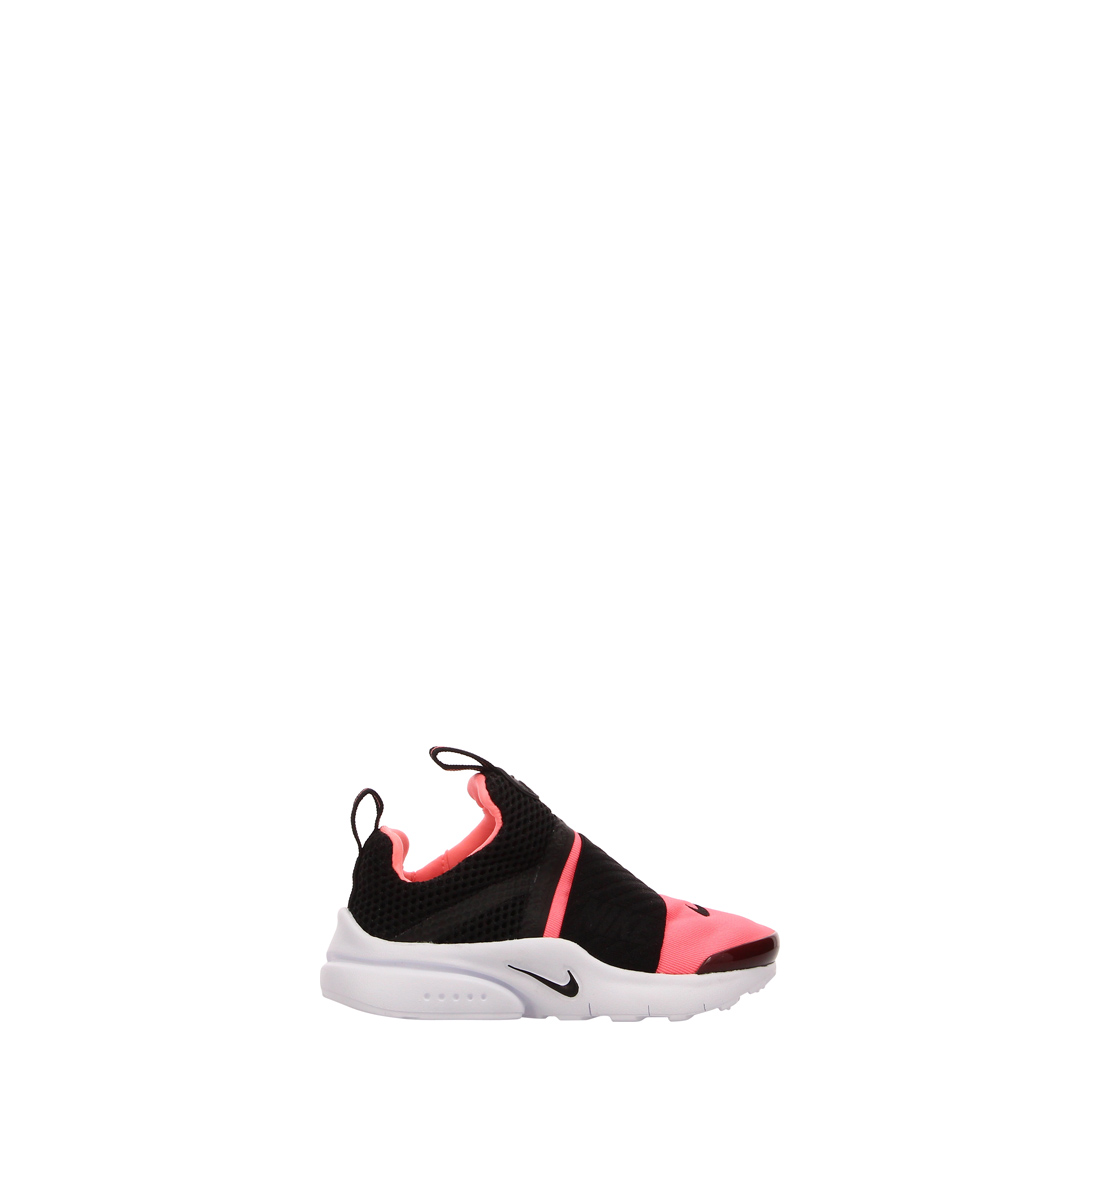 release date: ecea5 74470 Chaussure de running nike air max sequent 2 pour femme gris froid   rouge  cocktail   rouge lave brillant   blanc j87z9262,nike soldes go sport,nike  roshe .